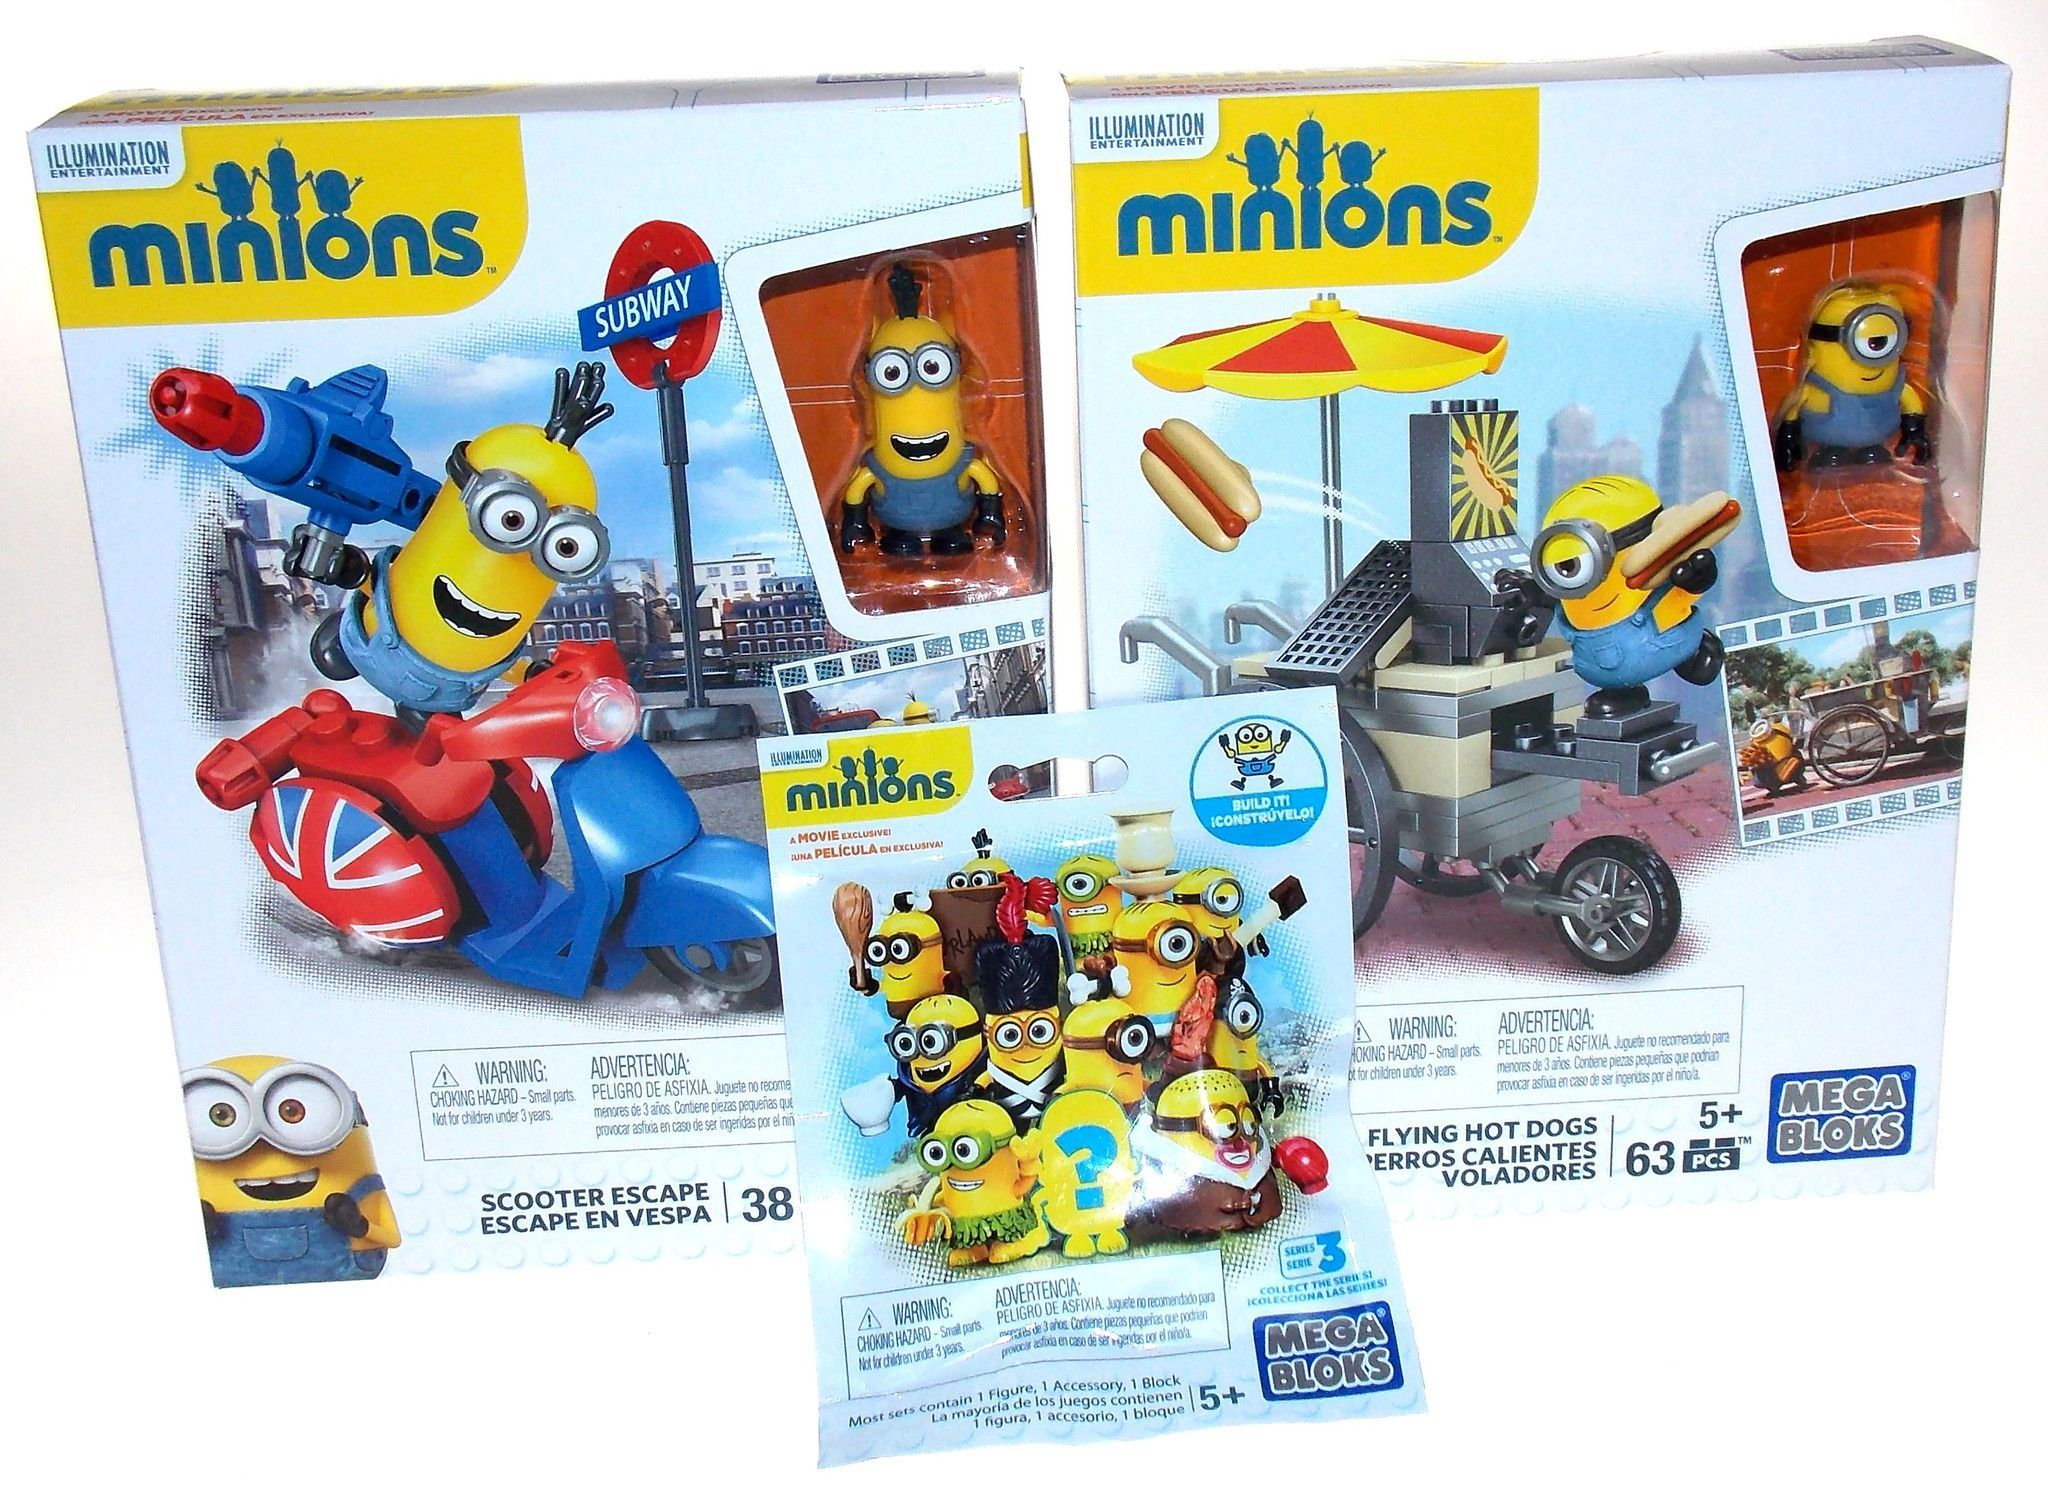 Fox and friends mega deals and steals - Illumination Entertainment Minions Mega Bloks Lot Of 3 Toys Includes Scooter Escape 38